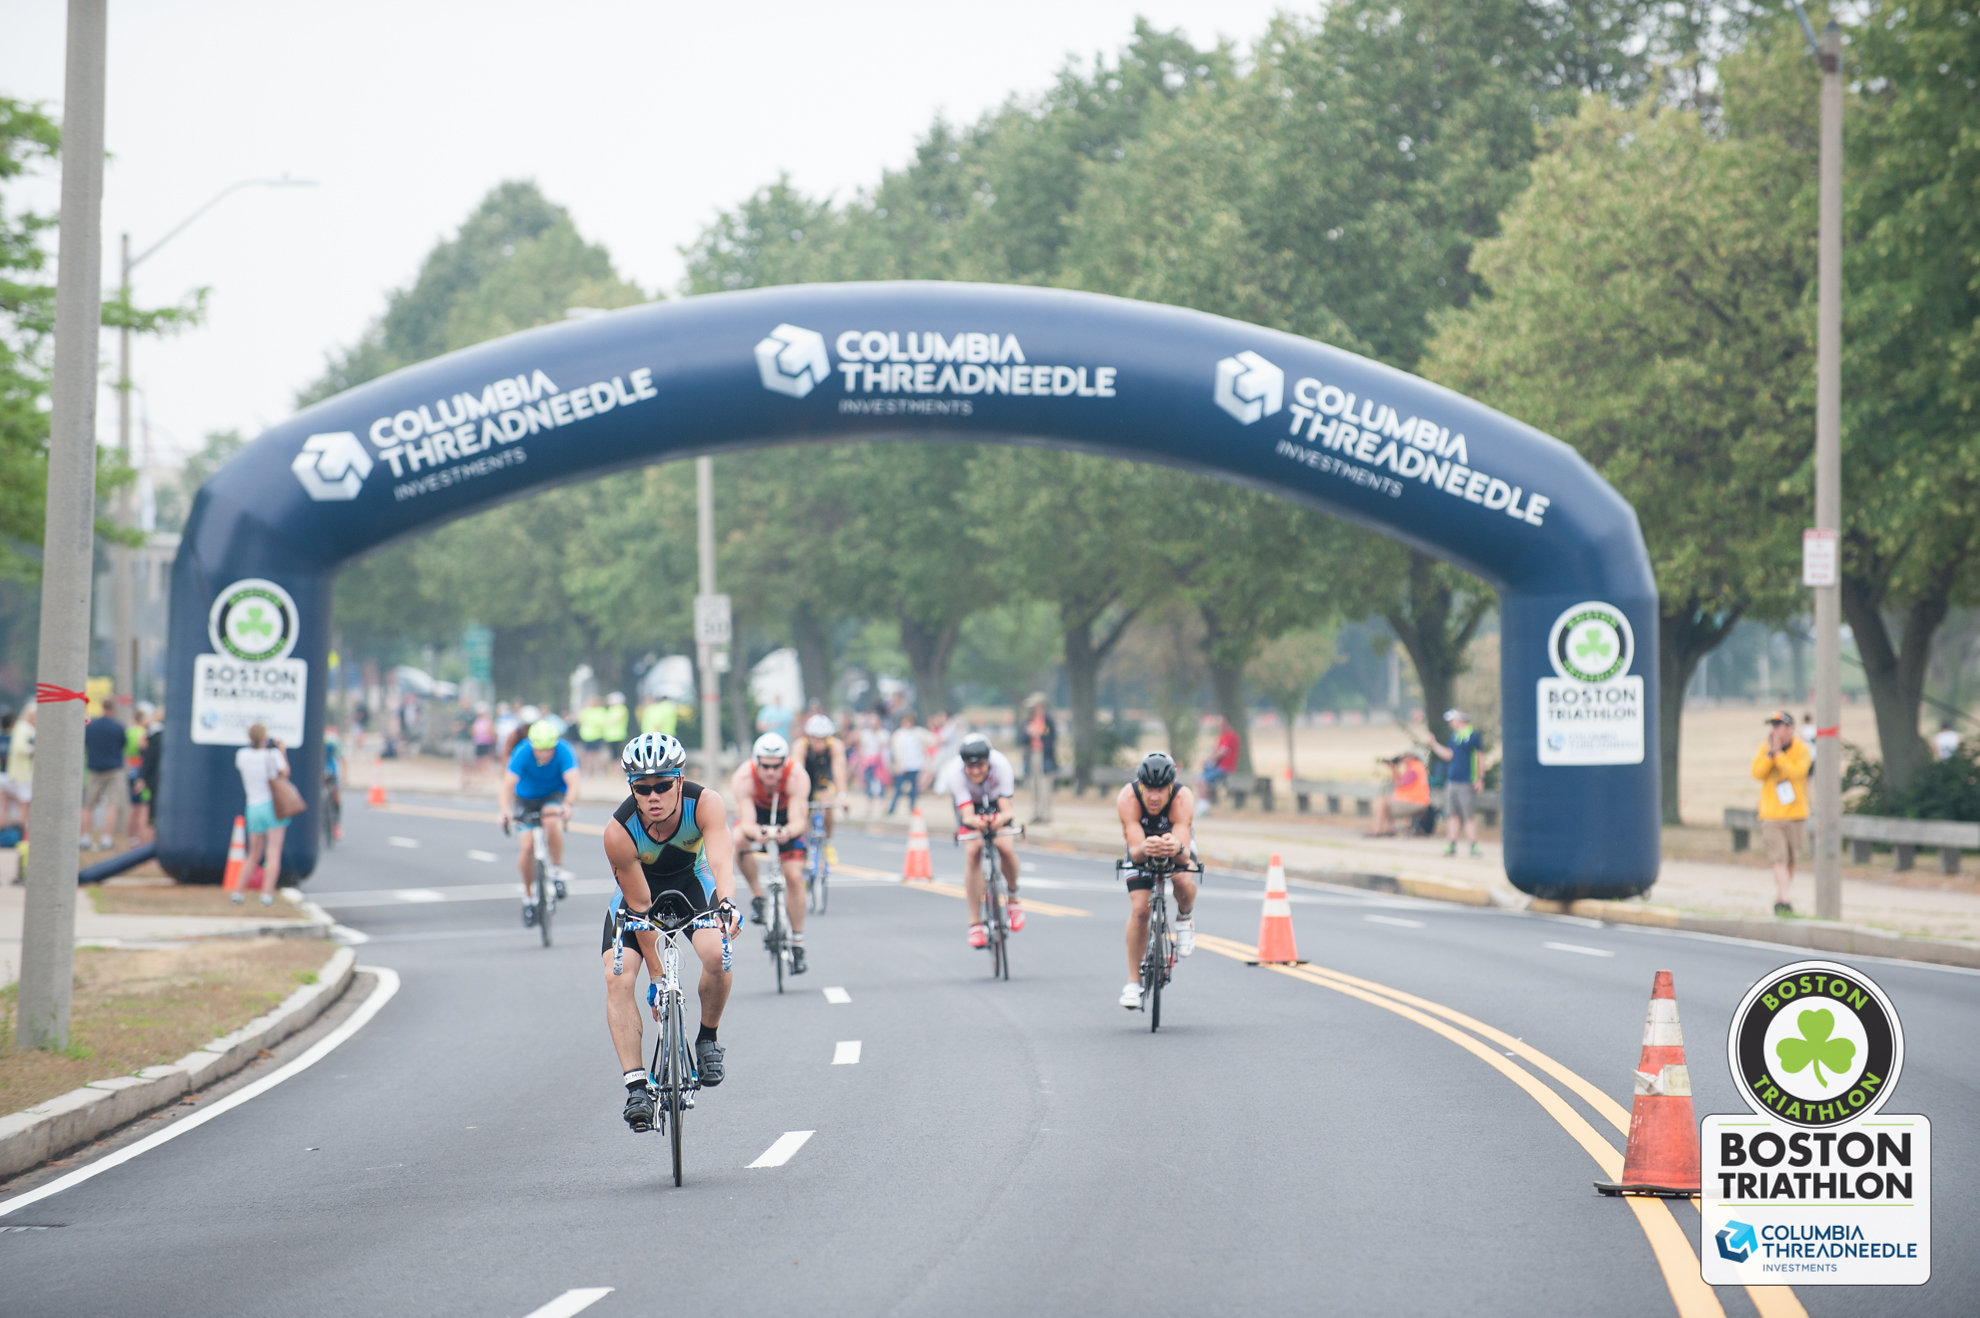 Cyclists ride under the Columbia Threadneedle arch on the streets of South Boston during the 2016 Columbia Threadneedle Investments Boston Triathlon (Photo: Columbia Threadneedle Investments)